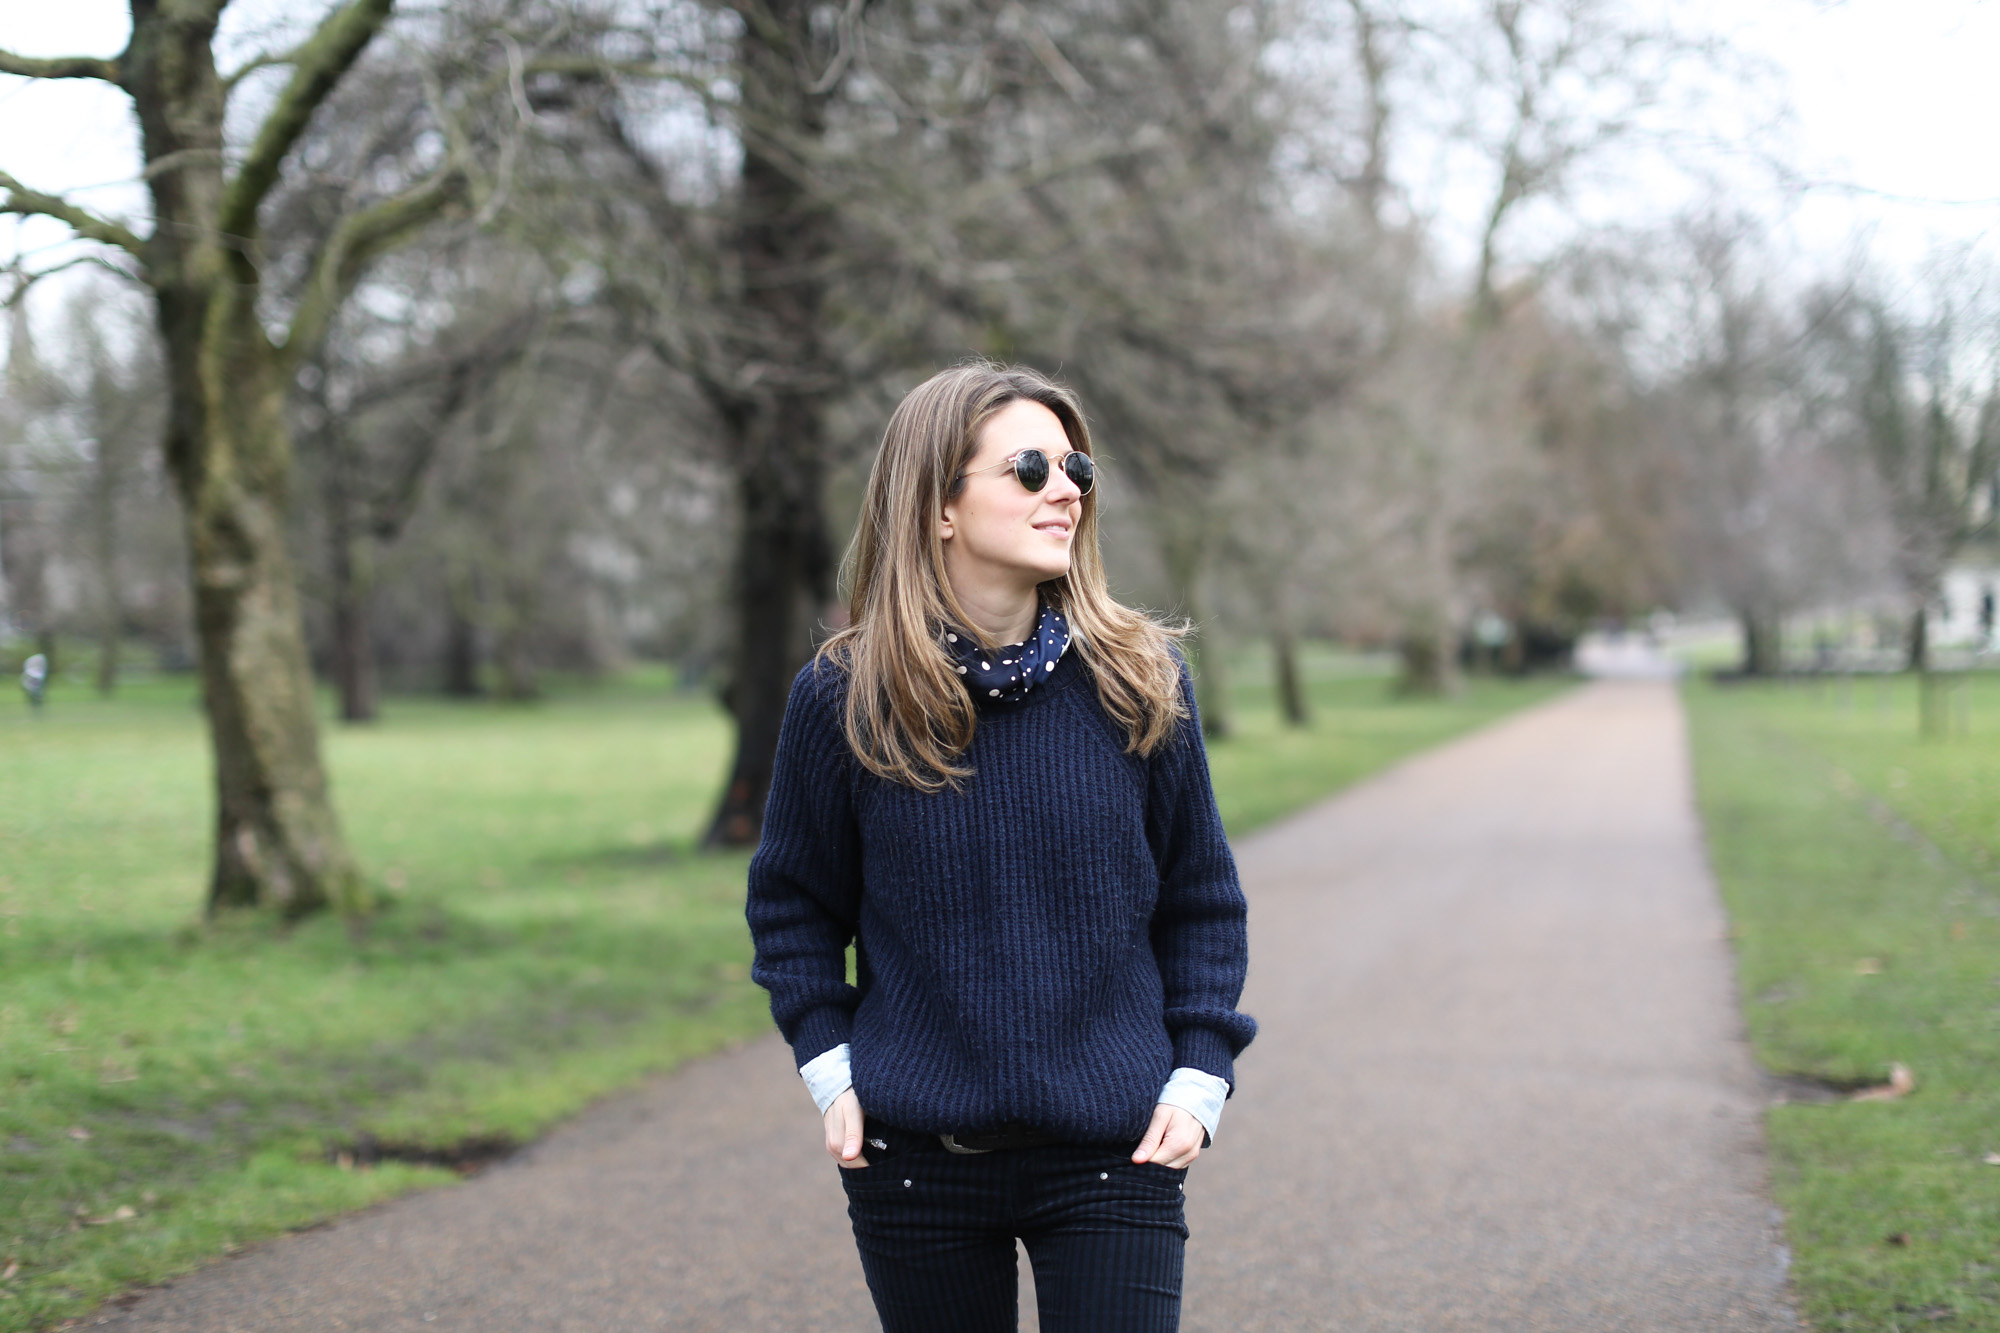 Clochet-streetstyle-london-hyde-park-cos-coat-navy-chunky-knit-10